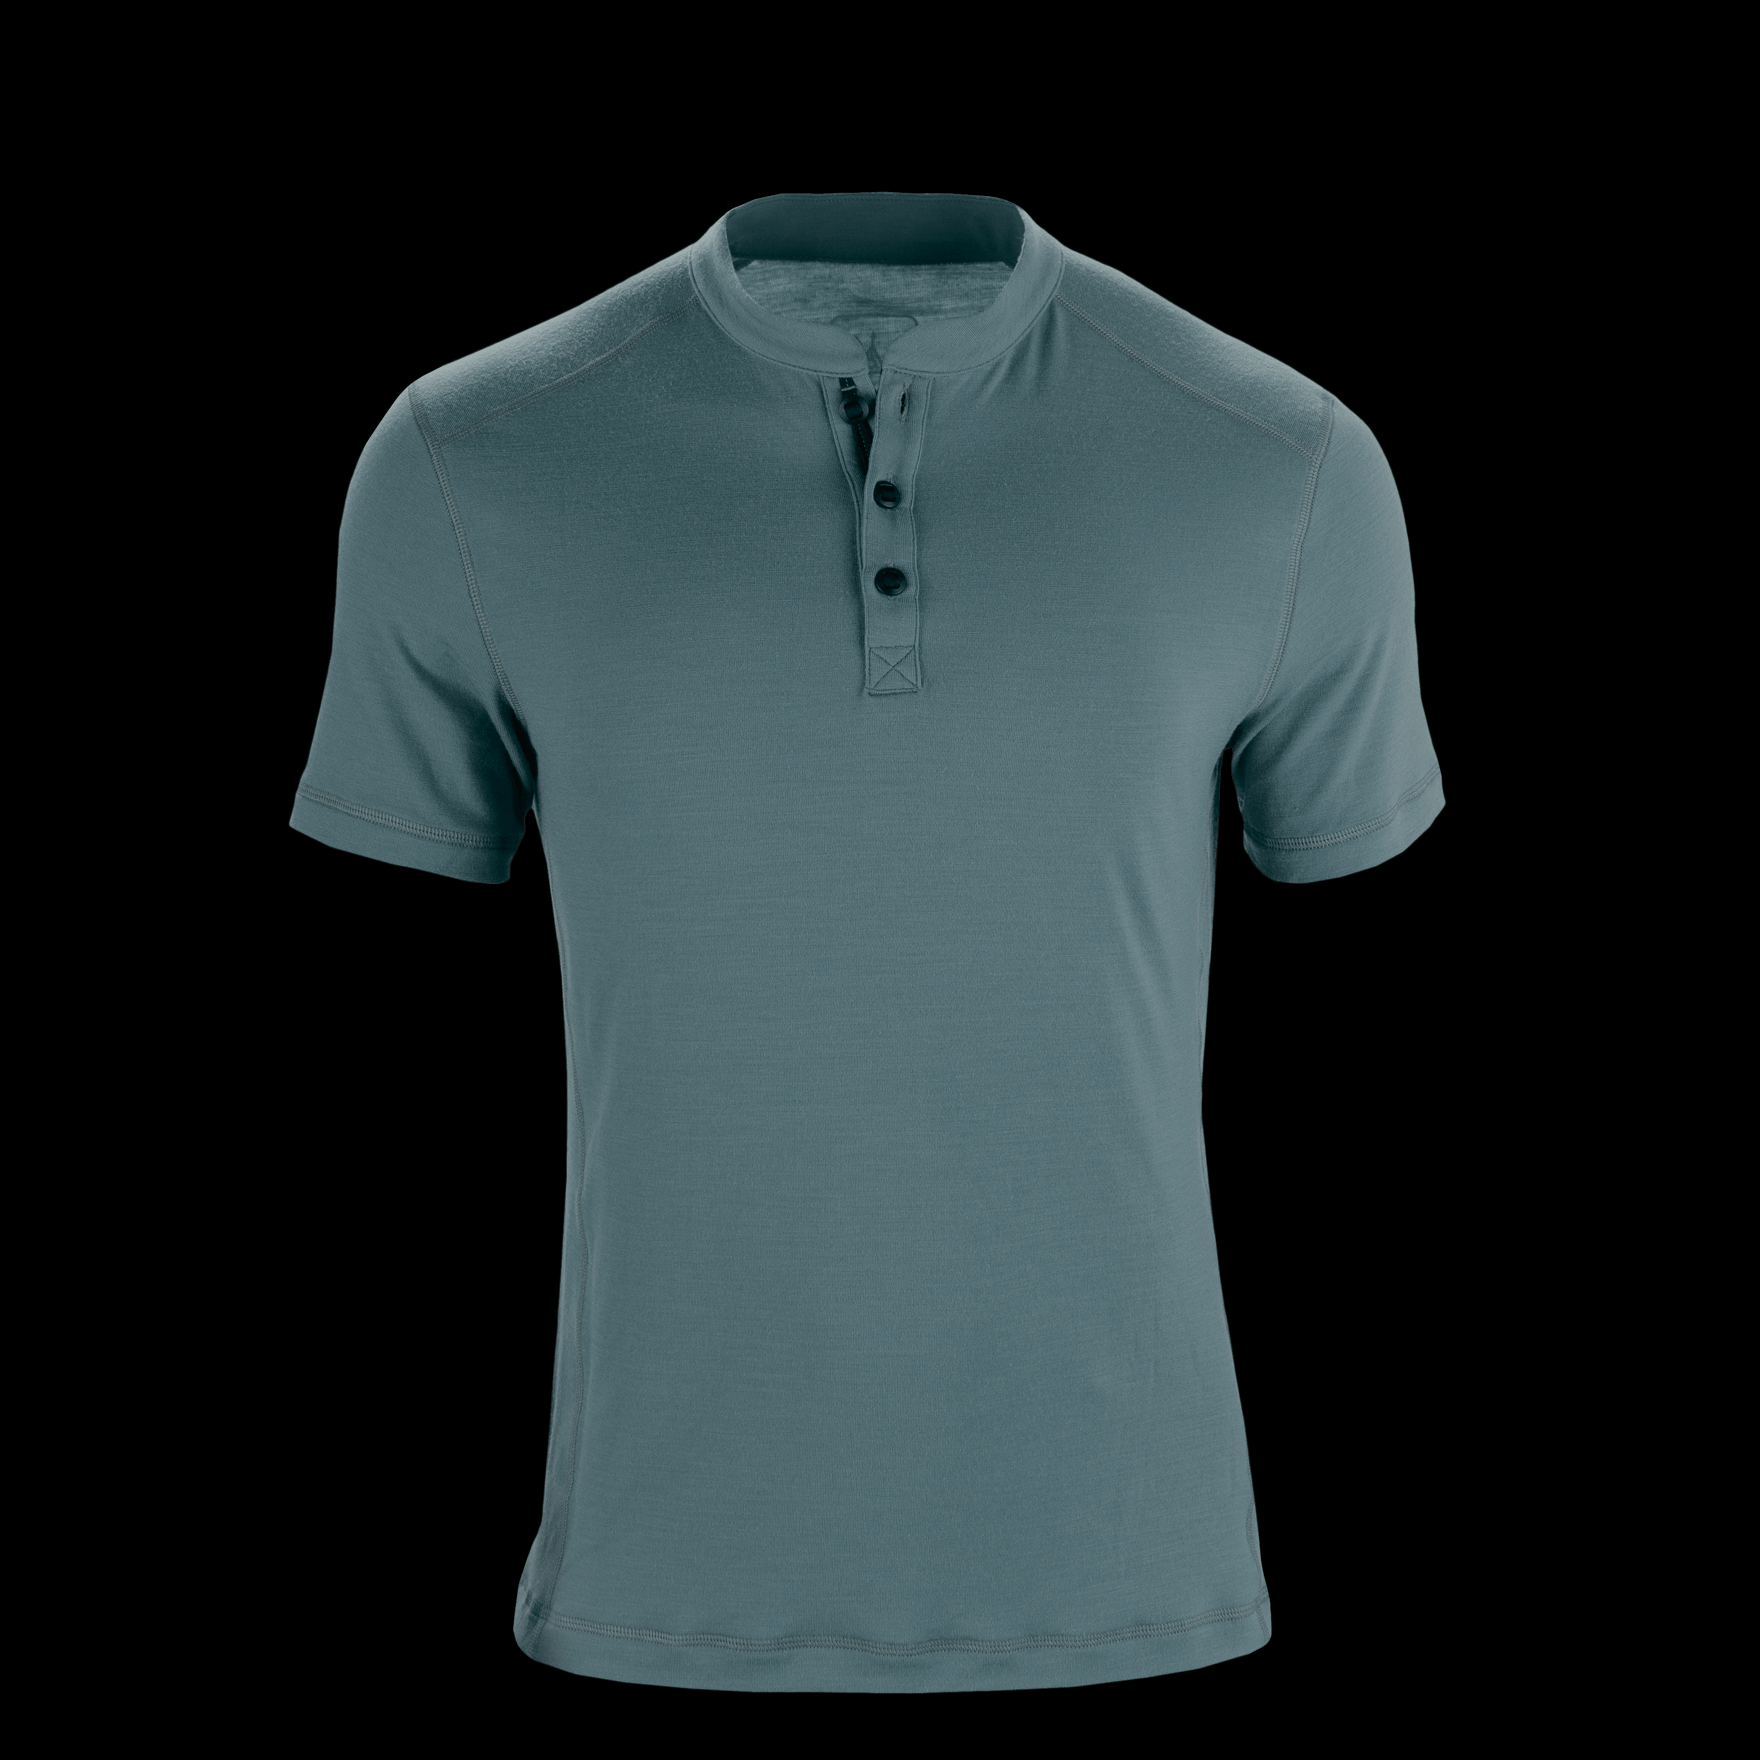 e5b5ae1ed61 Triple G Shirts – EDGE Engineering and Consulting Limited